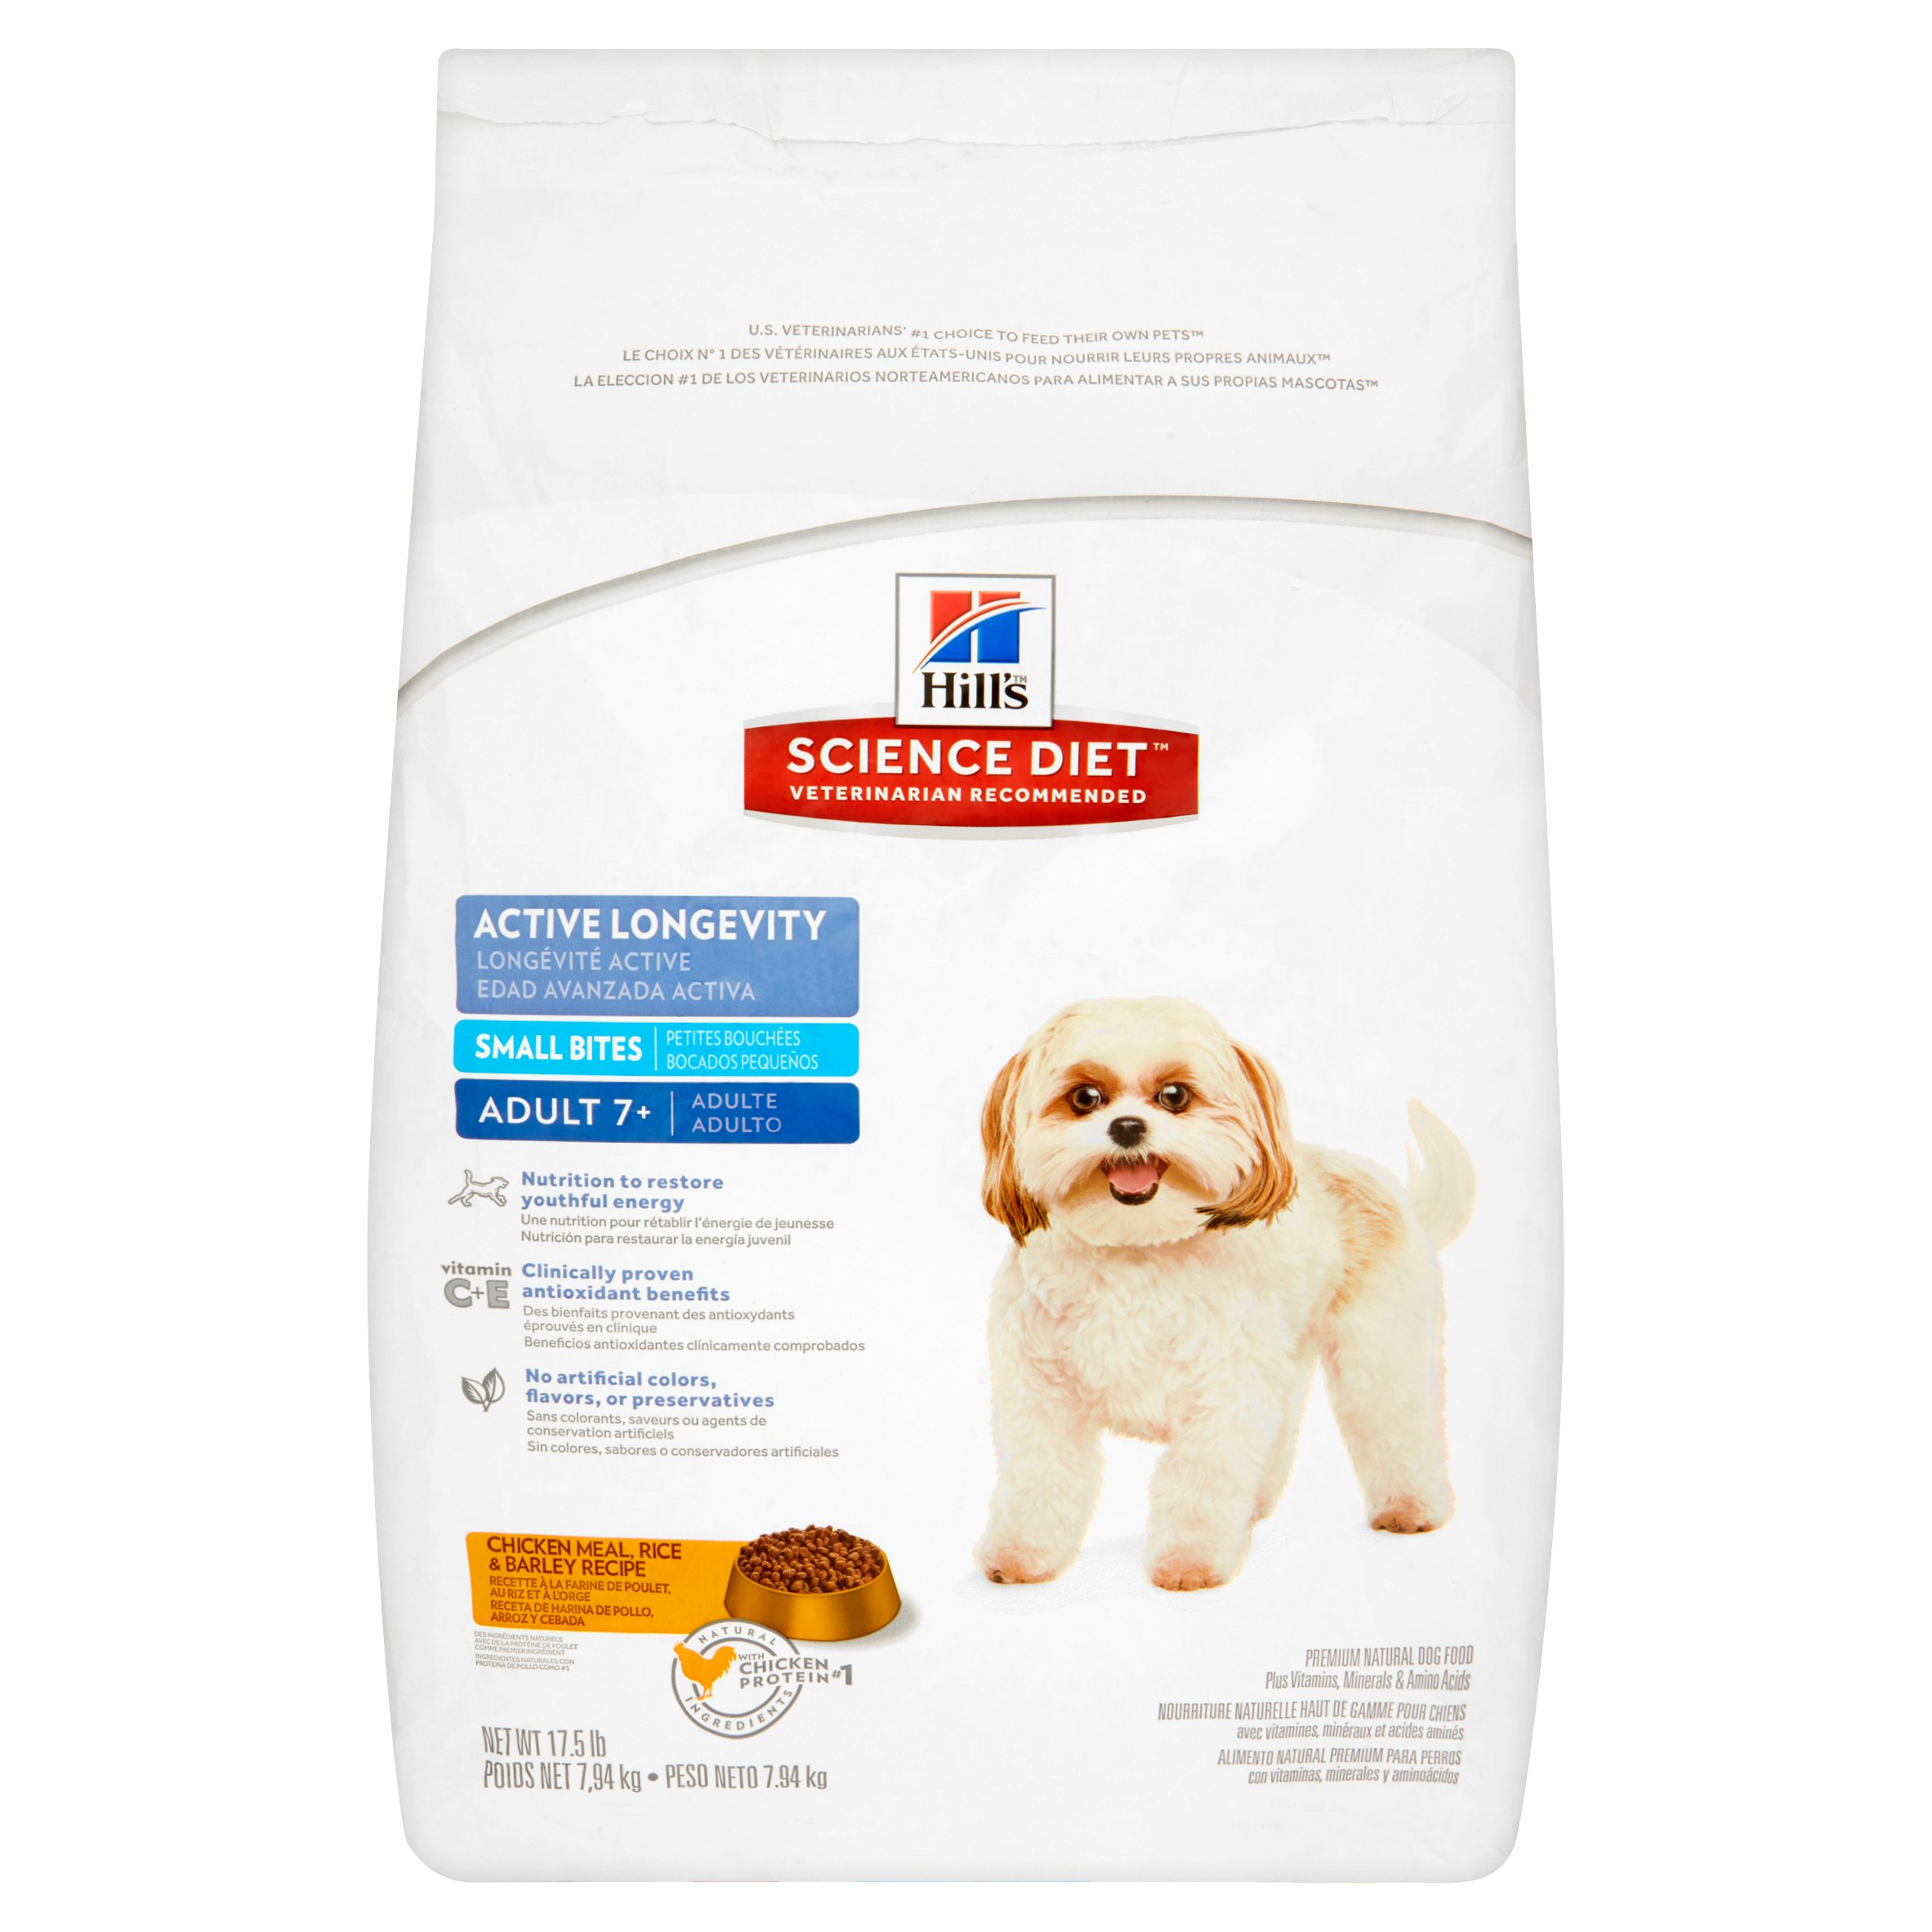 Hill's Science Diet Small Bites Chicken Meal, Rice & Barley Recipe Dog Food Adult 7+, 17.5 lb by Hill's Pet Nutrition, Inc.